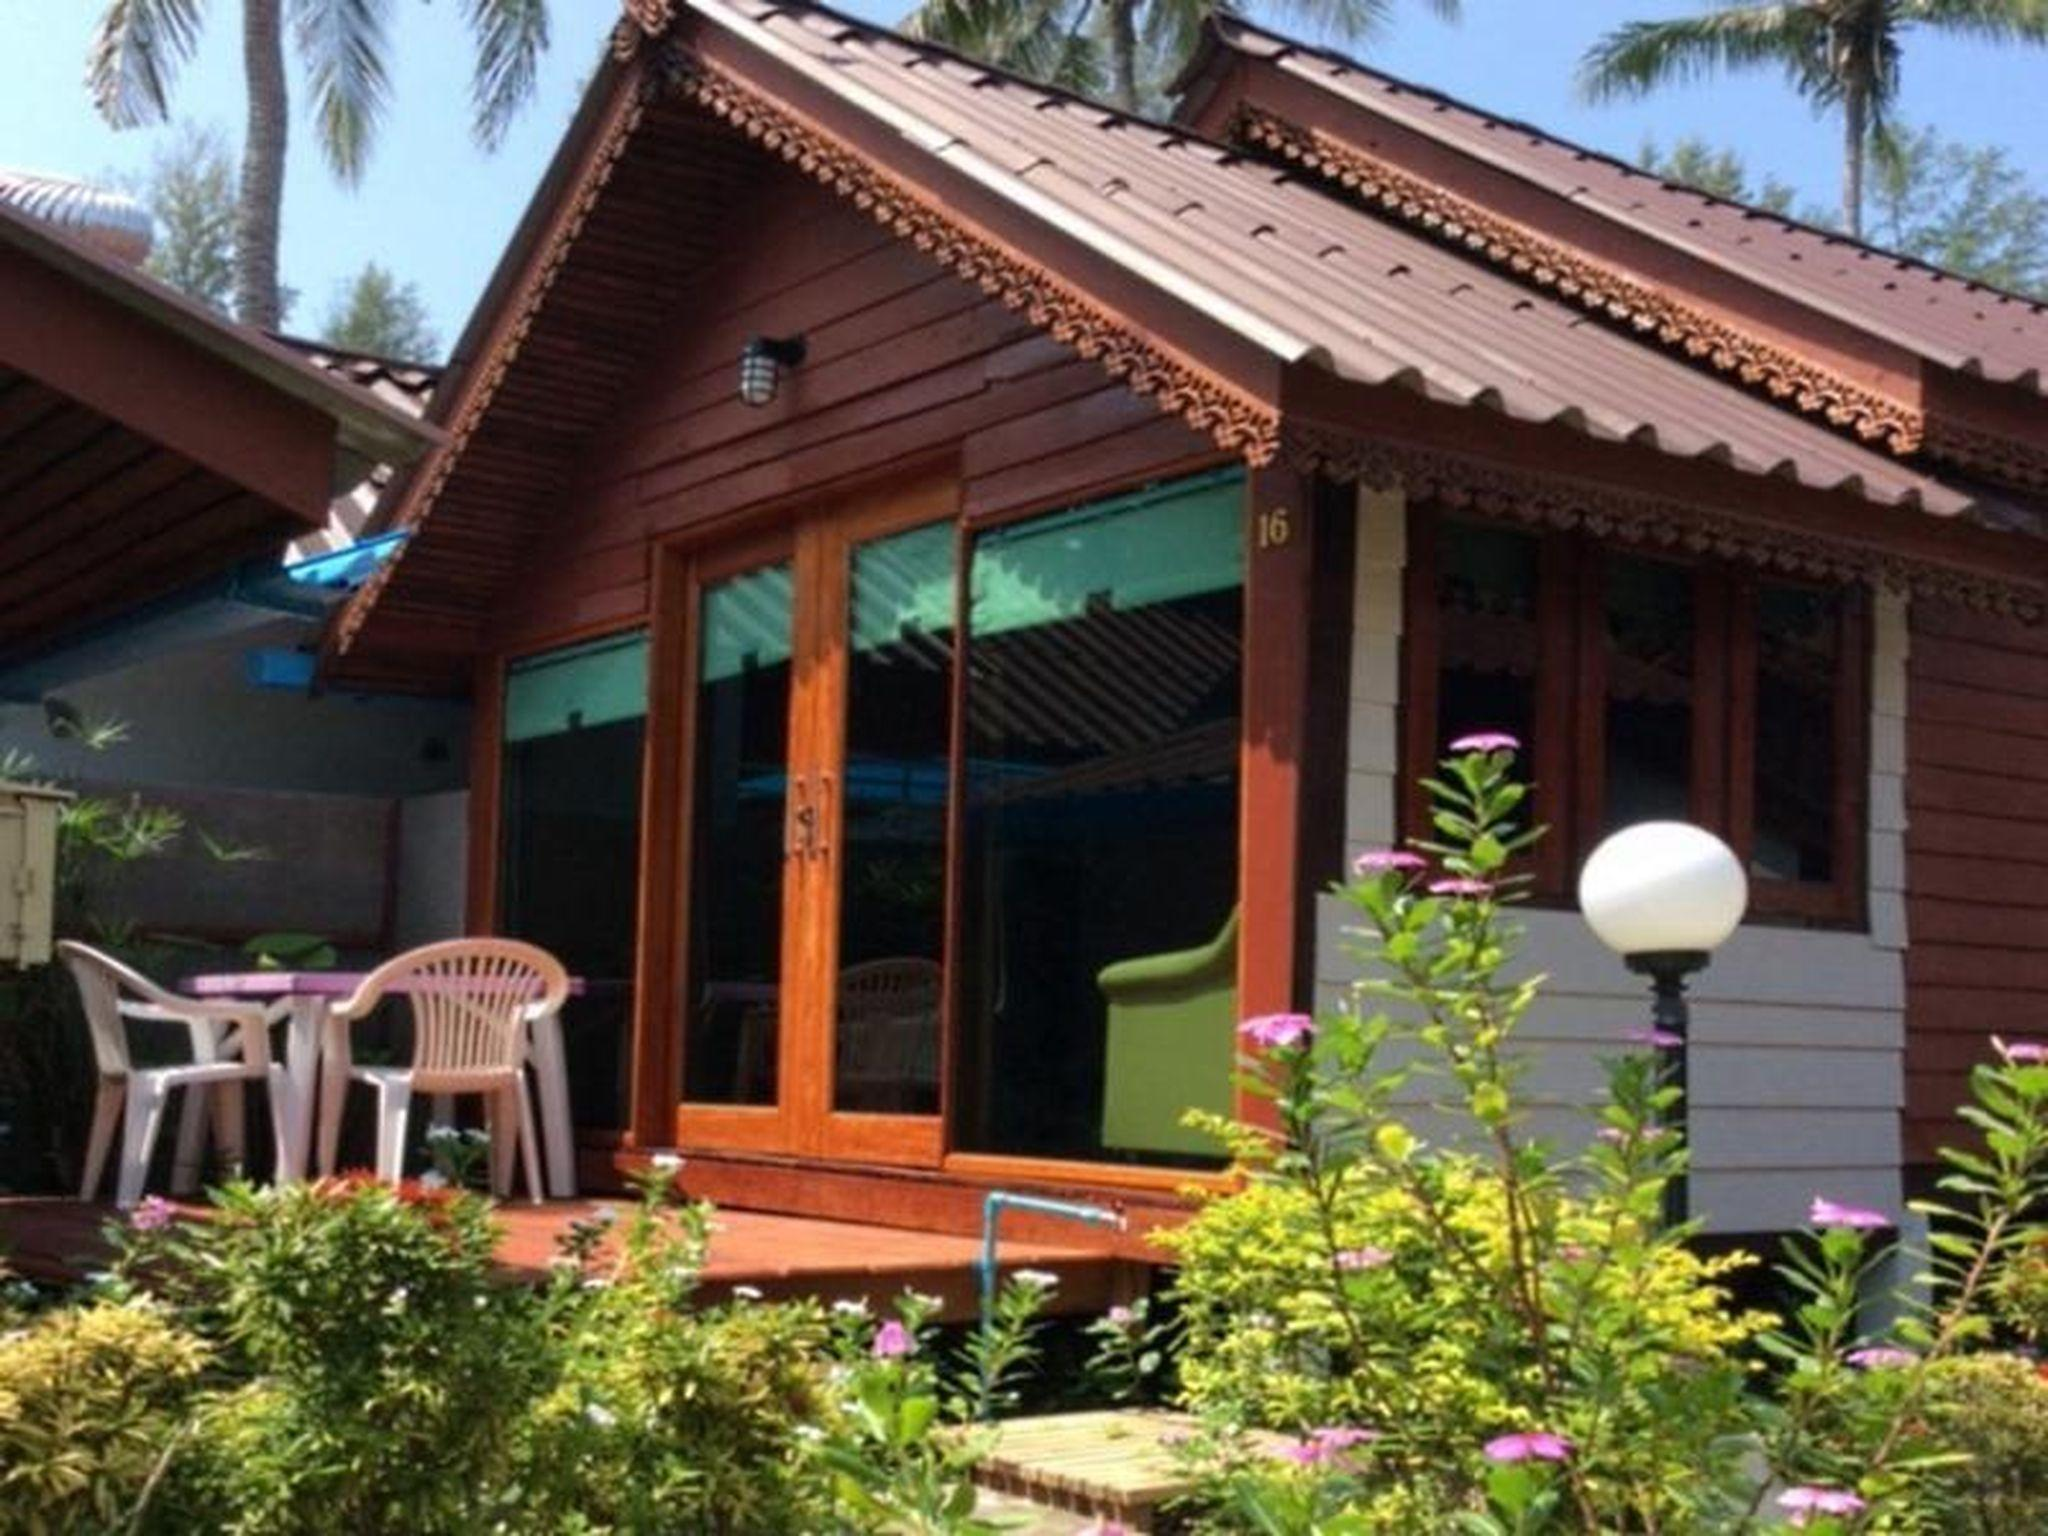 Sea breeze -perhebungalow (Sea Breeze Family Bungalow)